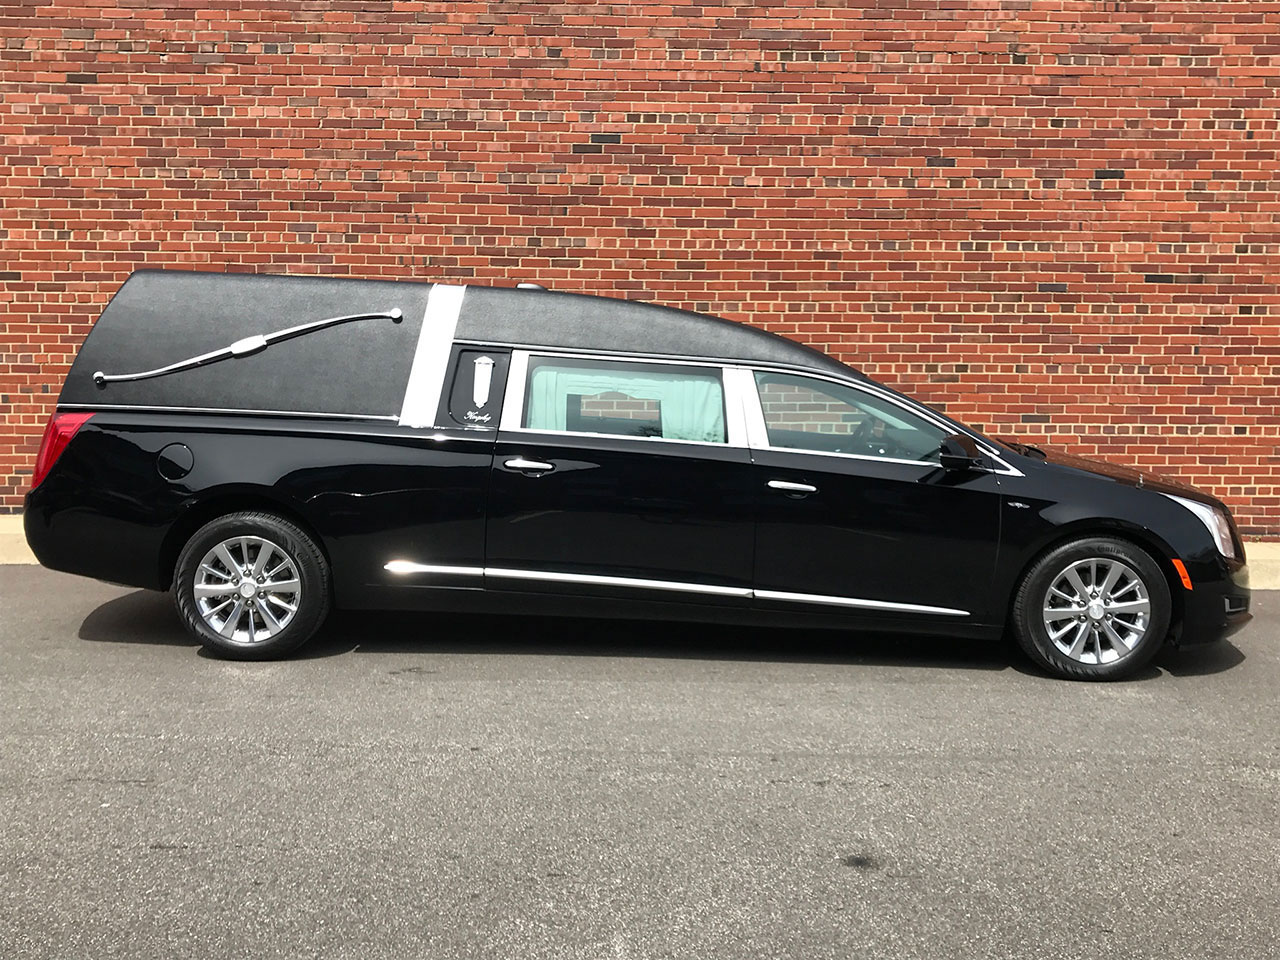 2017 Cadillac Eagle Kingsley Hearse